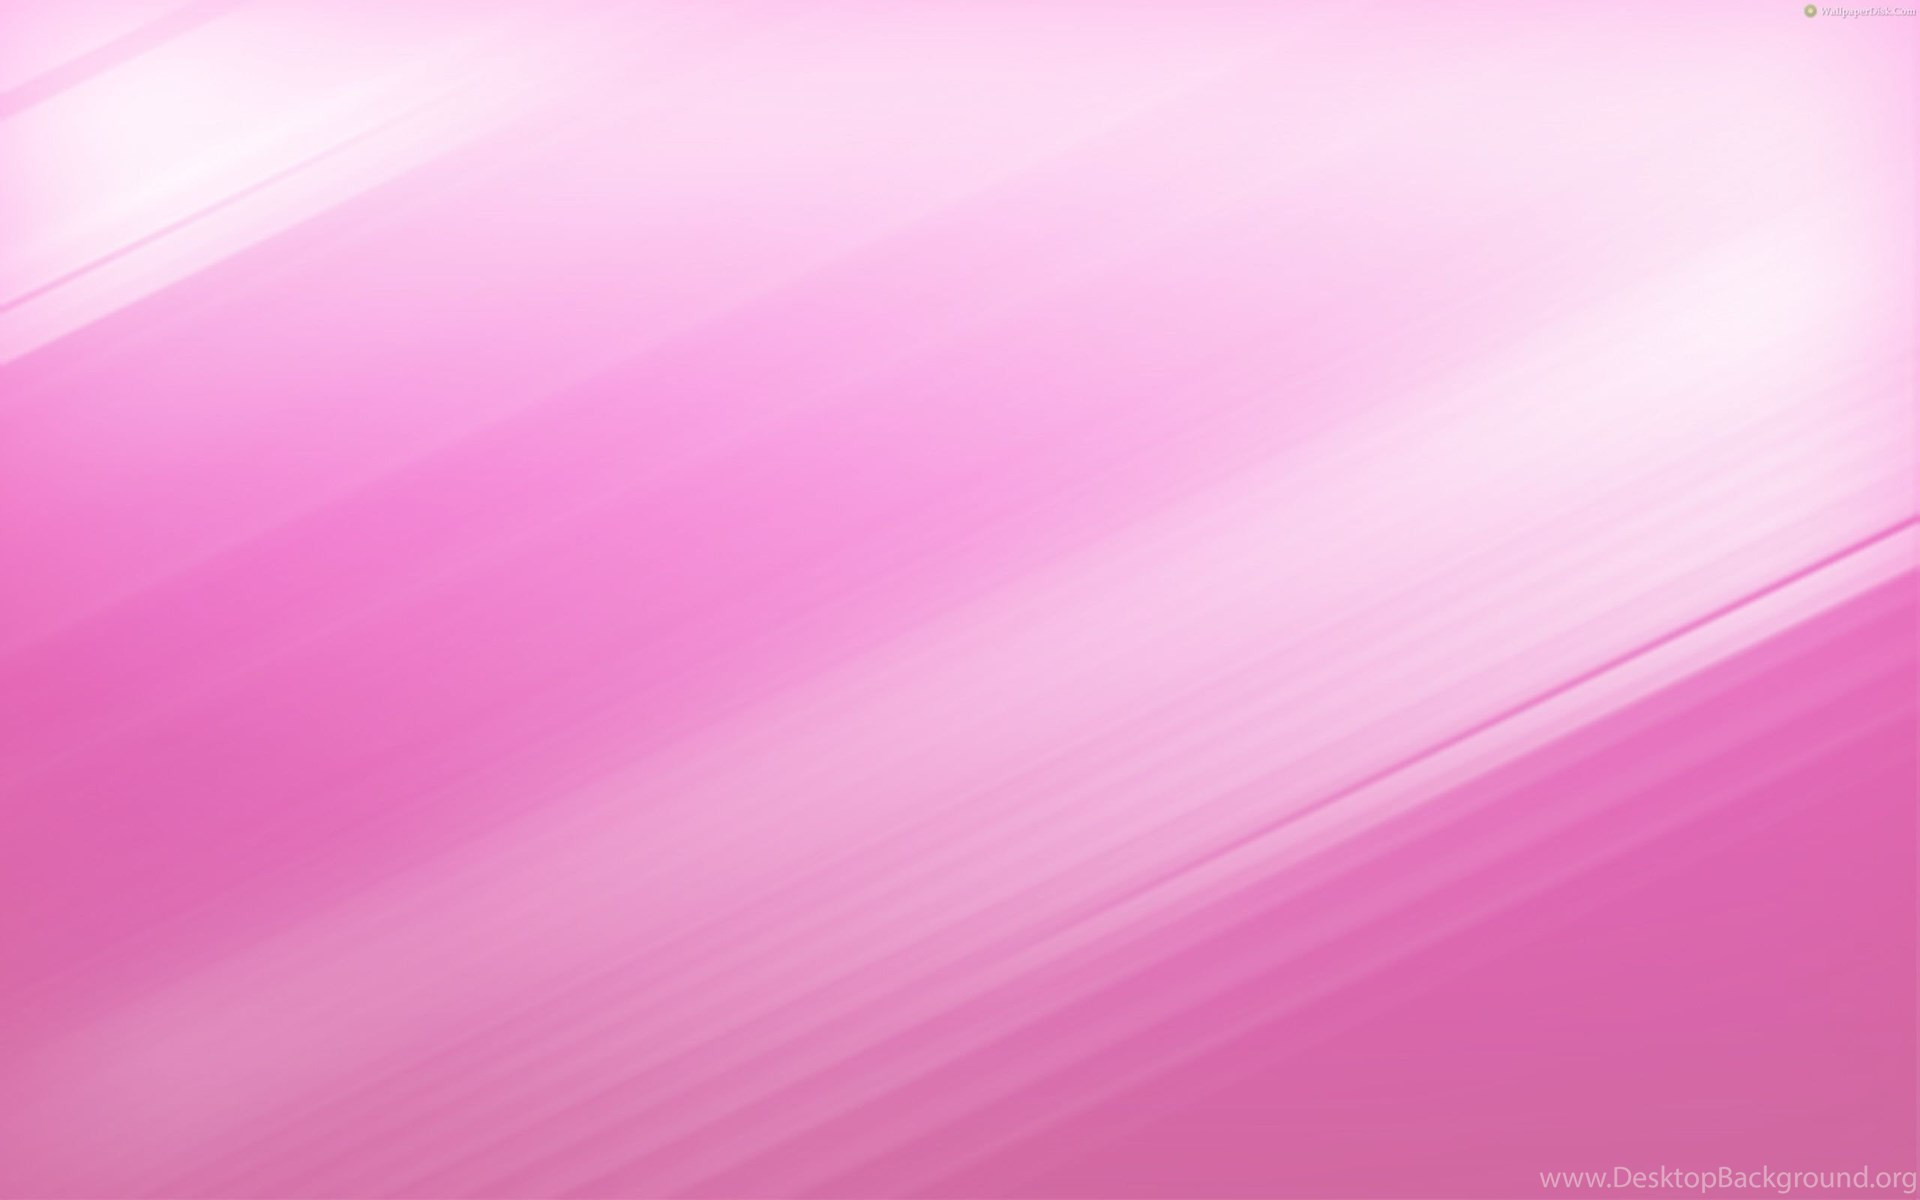 pink background images wallpapers h